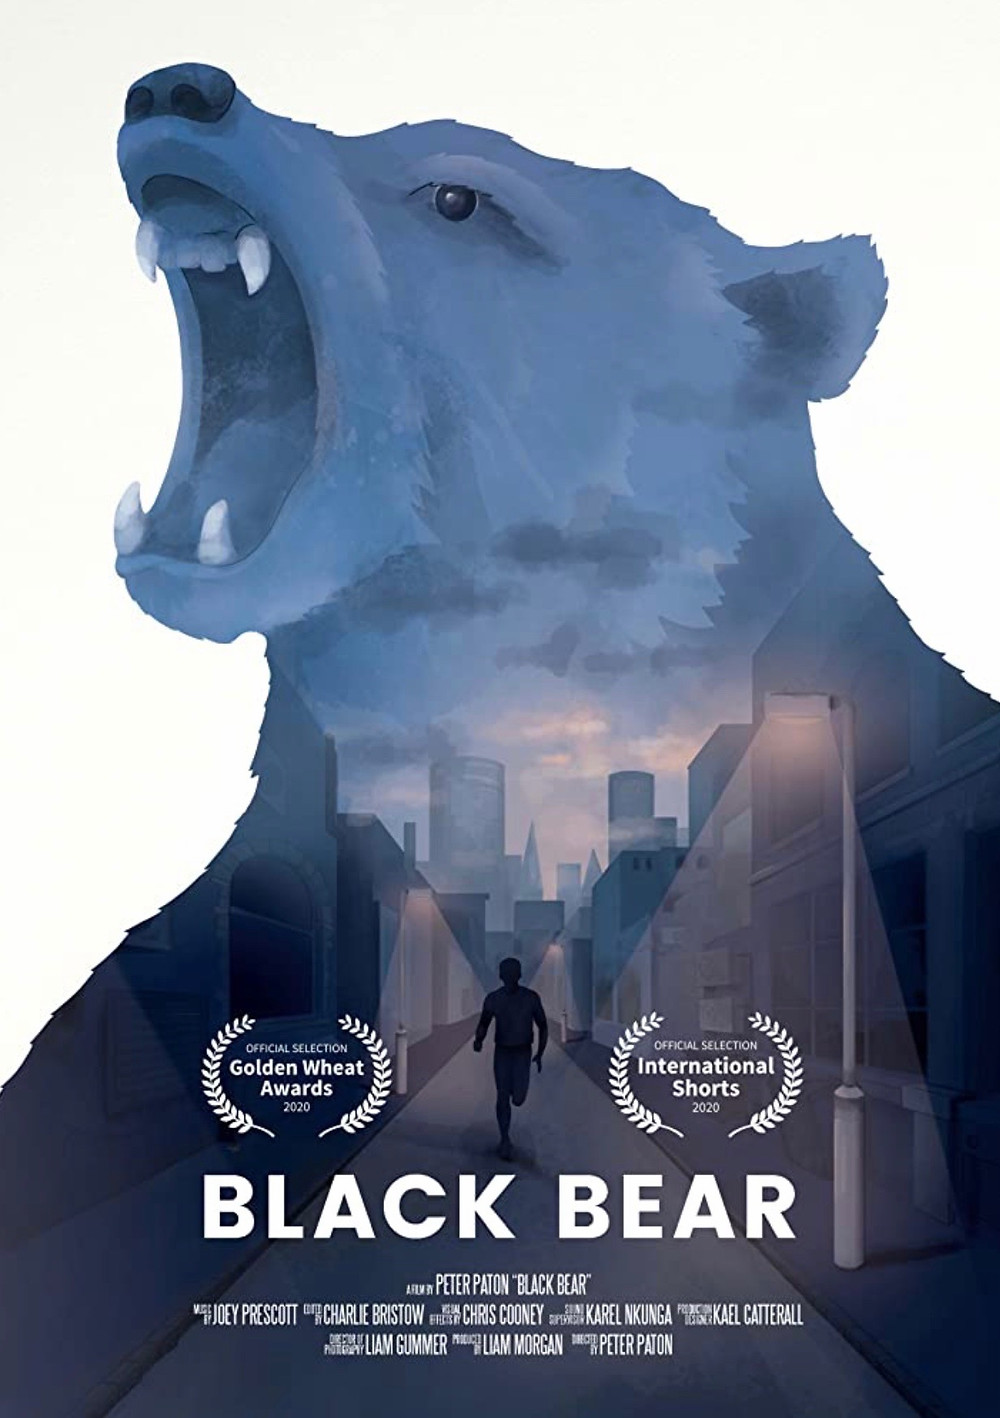 A bear consumes this image as it stands with its mouth wide open in an intimidating stance. Within the bear is another photo containing a silhouette running along the street at dusk; the sky blue with shades of orange and pink infused within it.